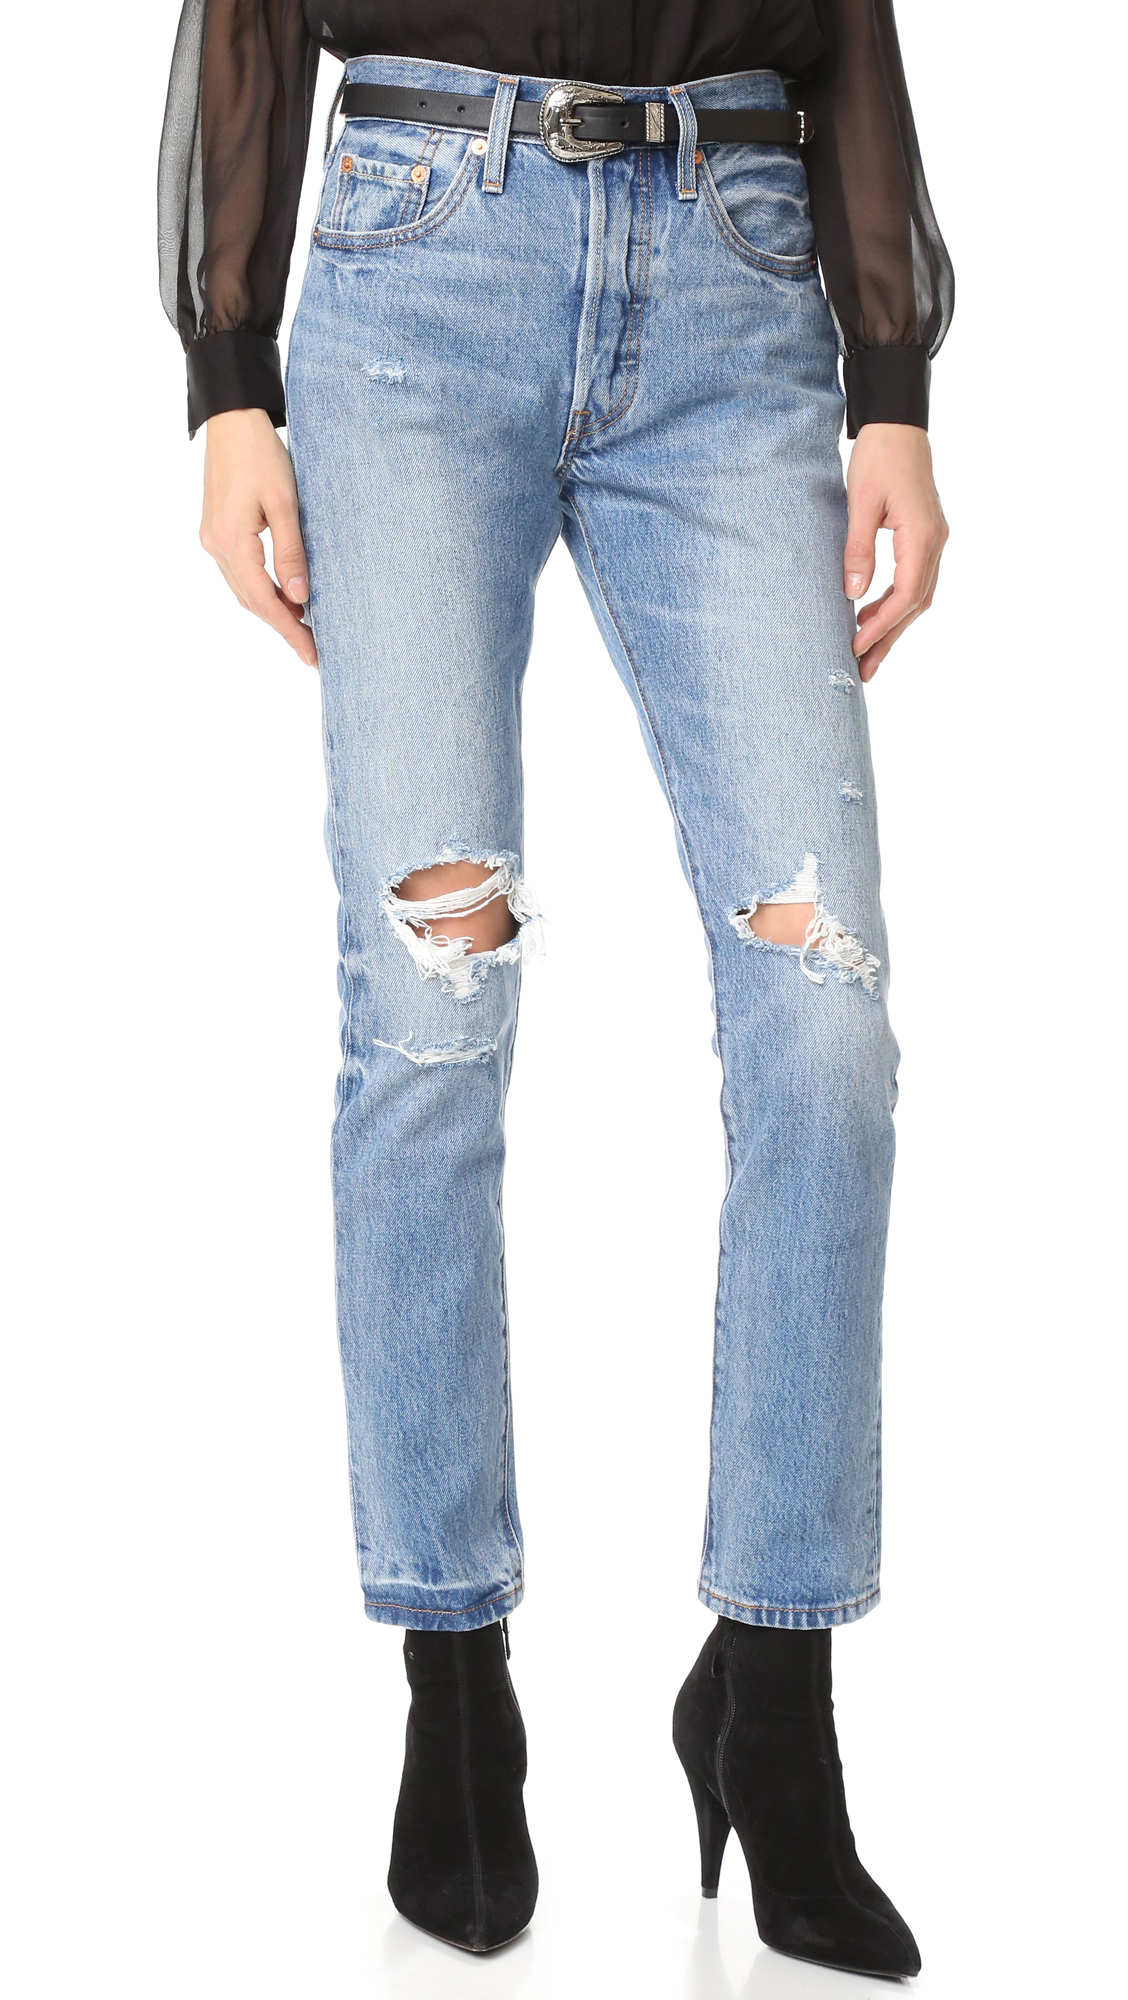 levi's, 501 skinny, distressed jeans, mom jeans, skinny straight